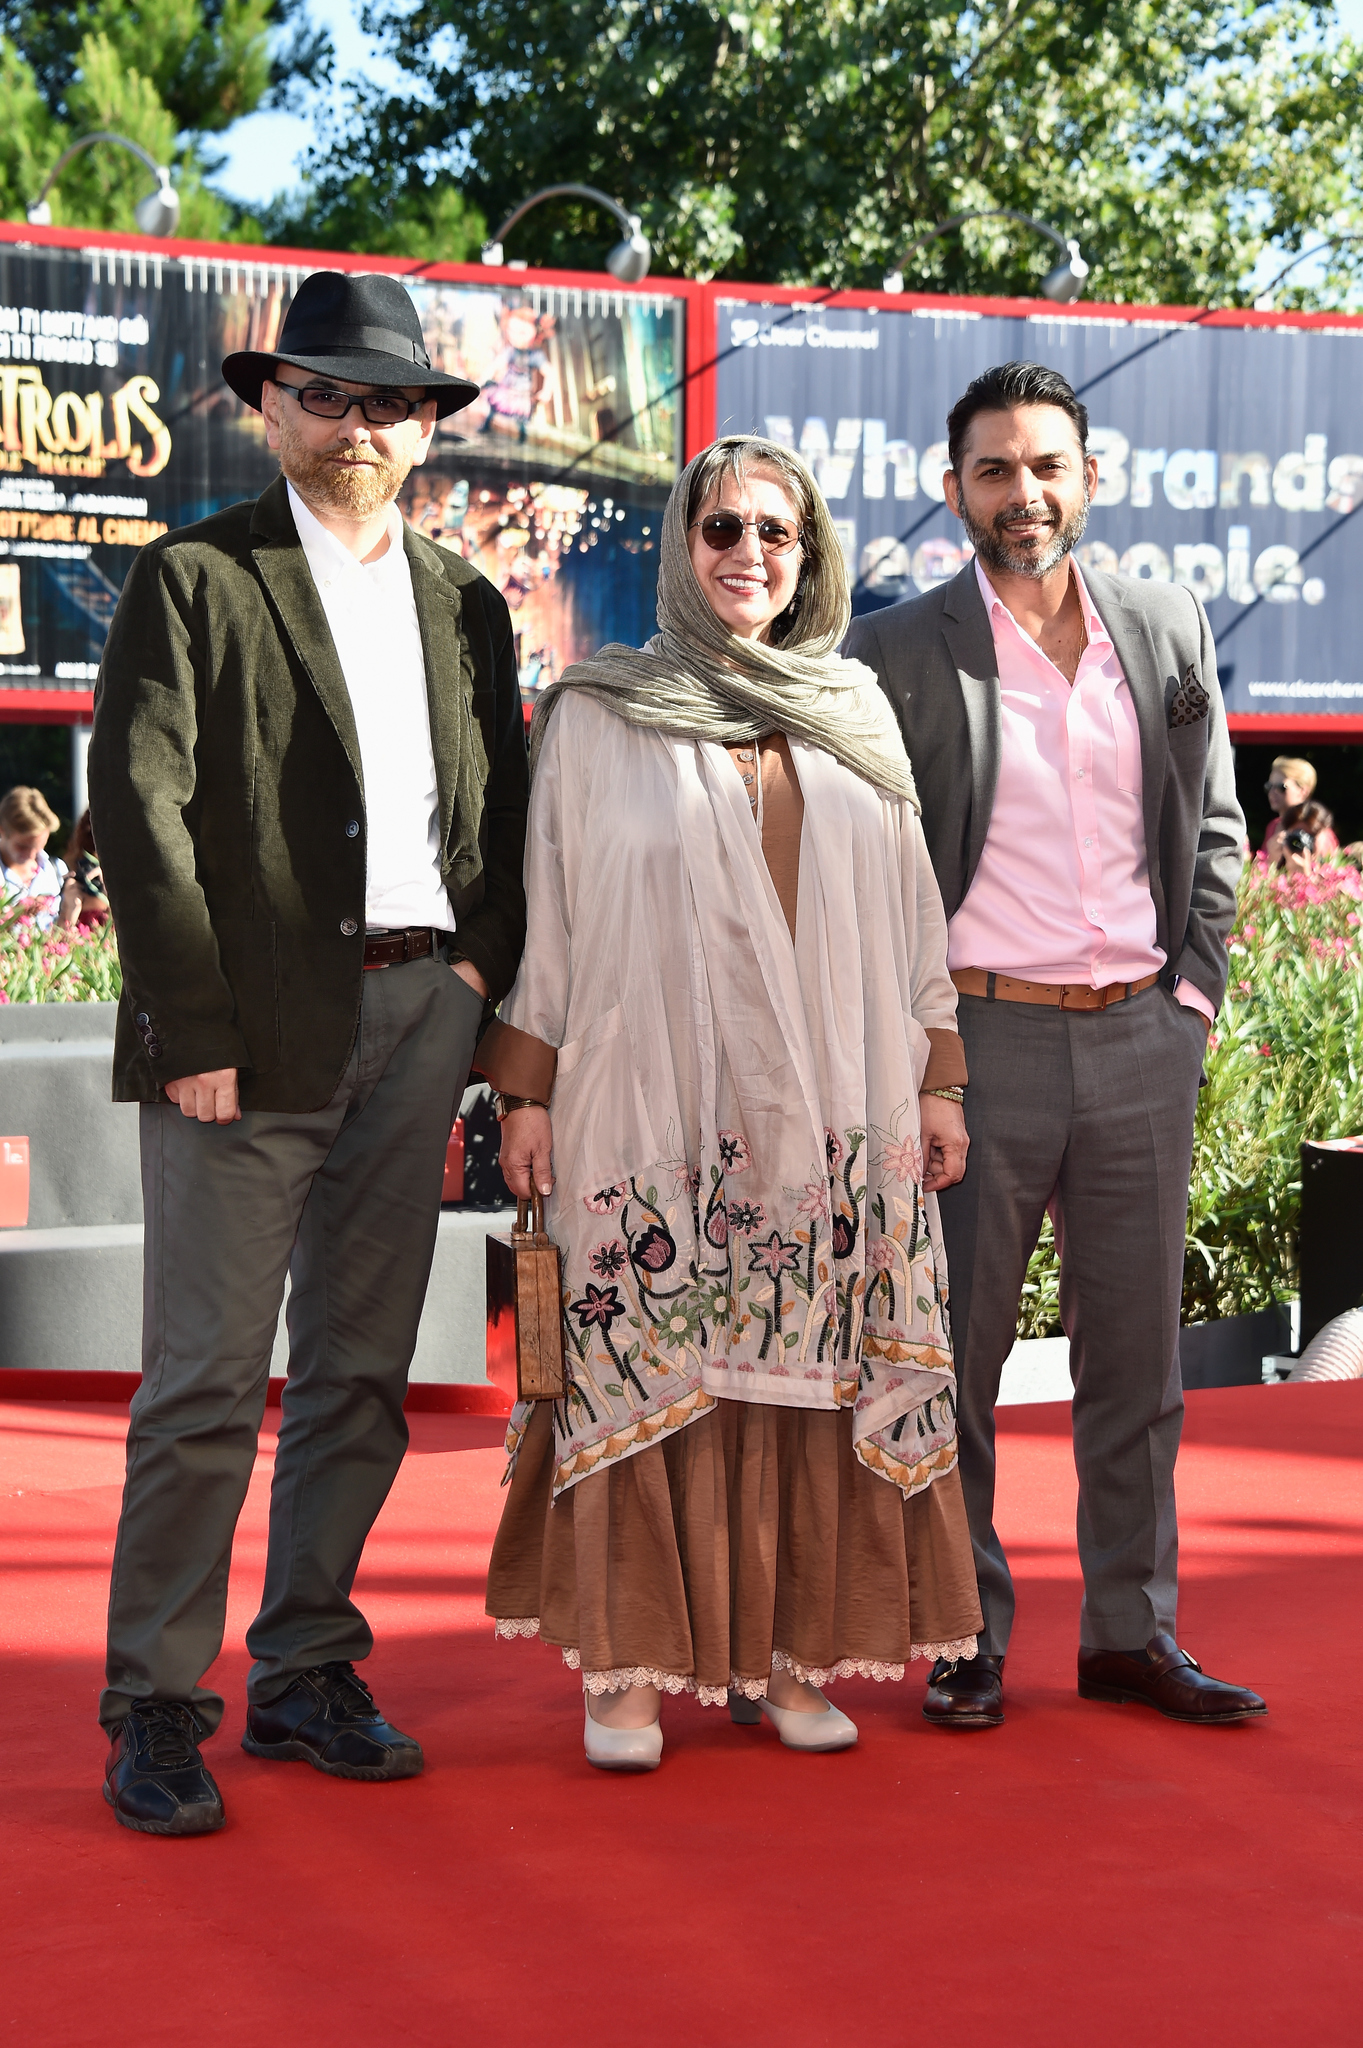 Rakhshan Banietemad, Habib Rezaei, and Payman Maadi at an event for Ghesse-ha (2014)